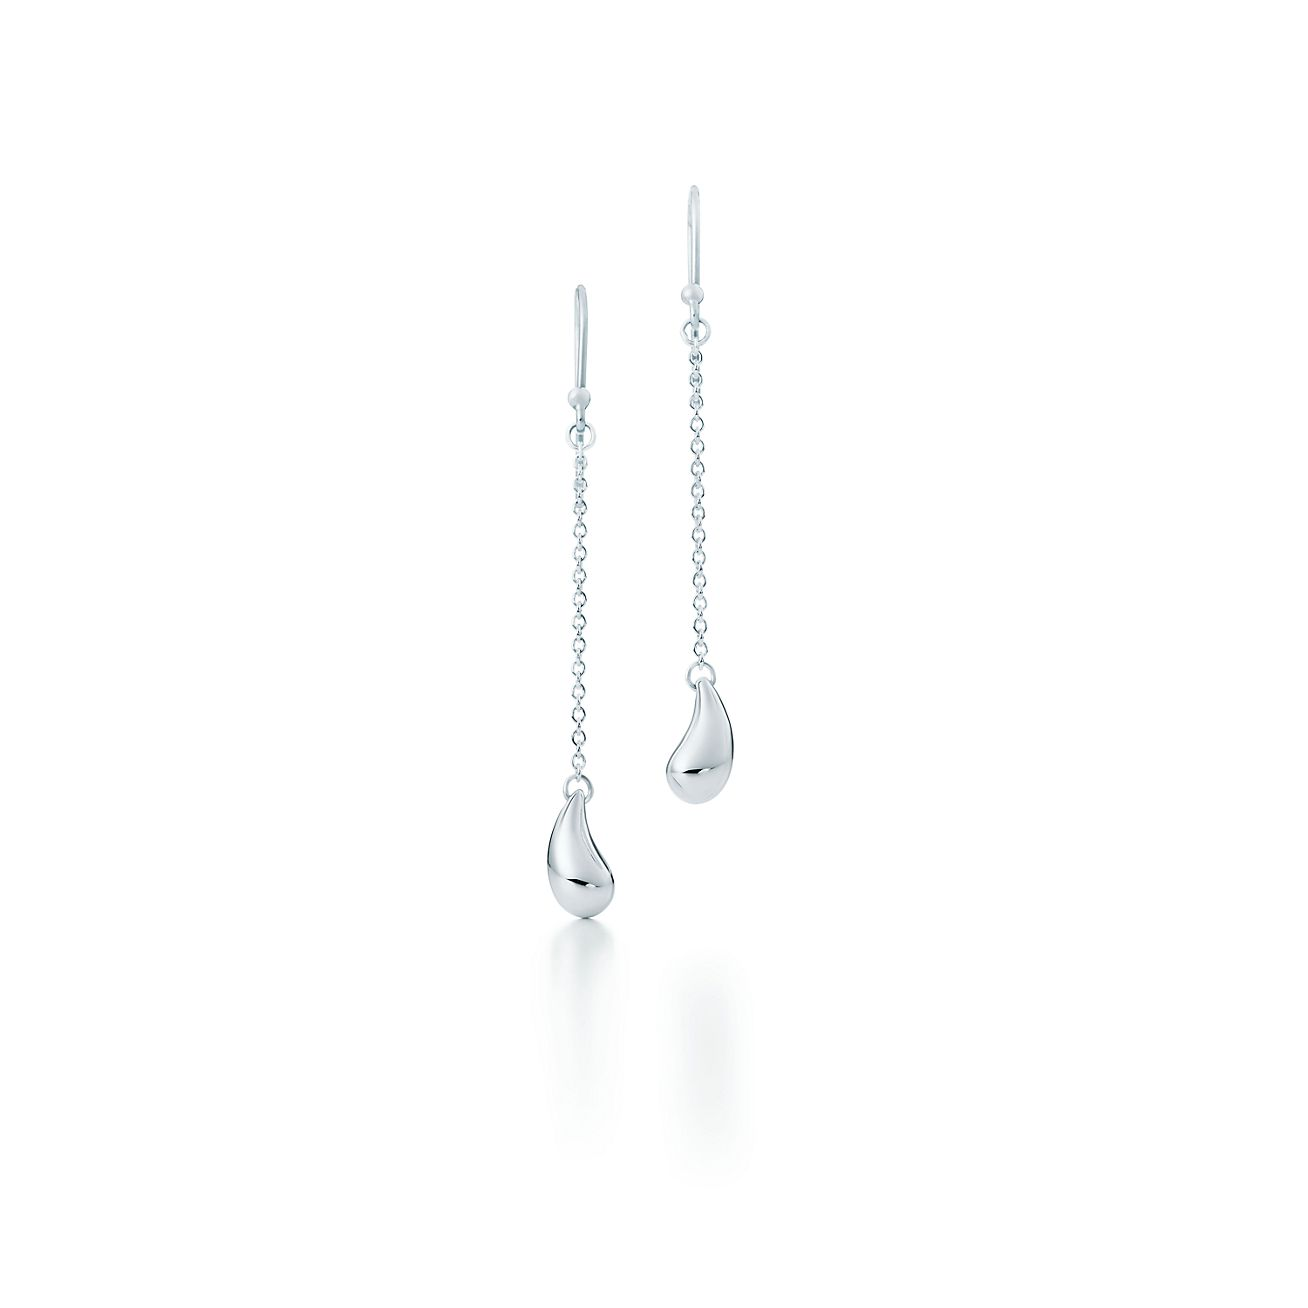 Elsa Peretti Teardrop Earrings